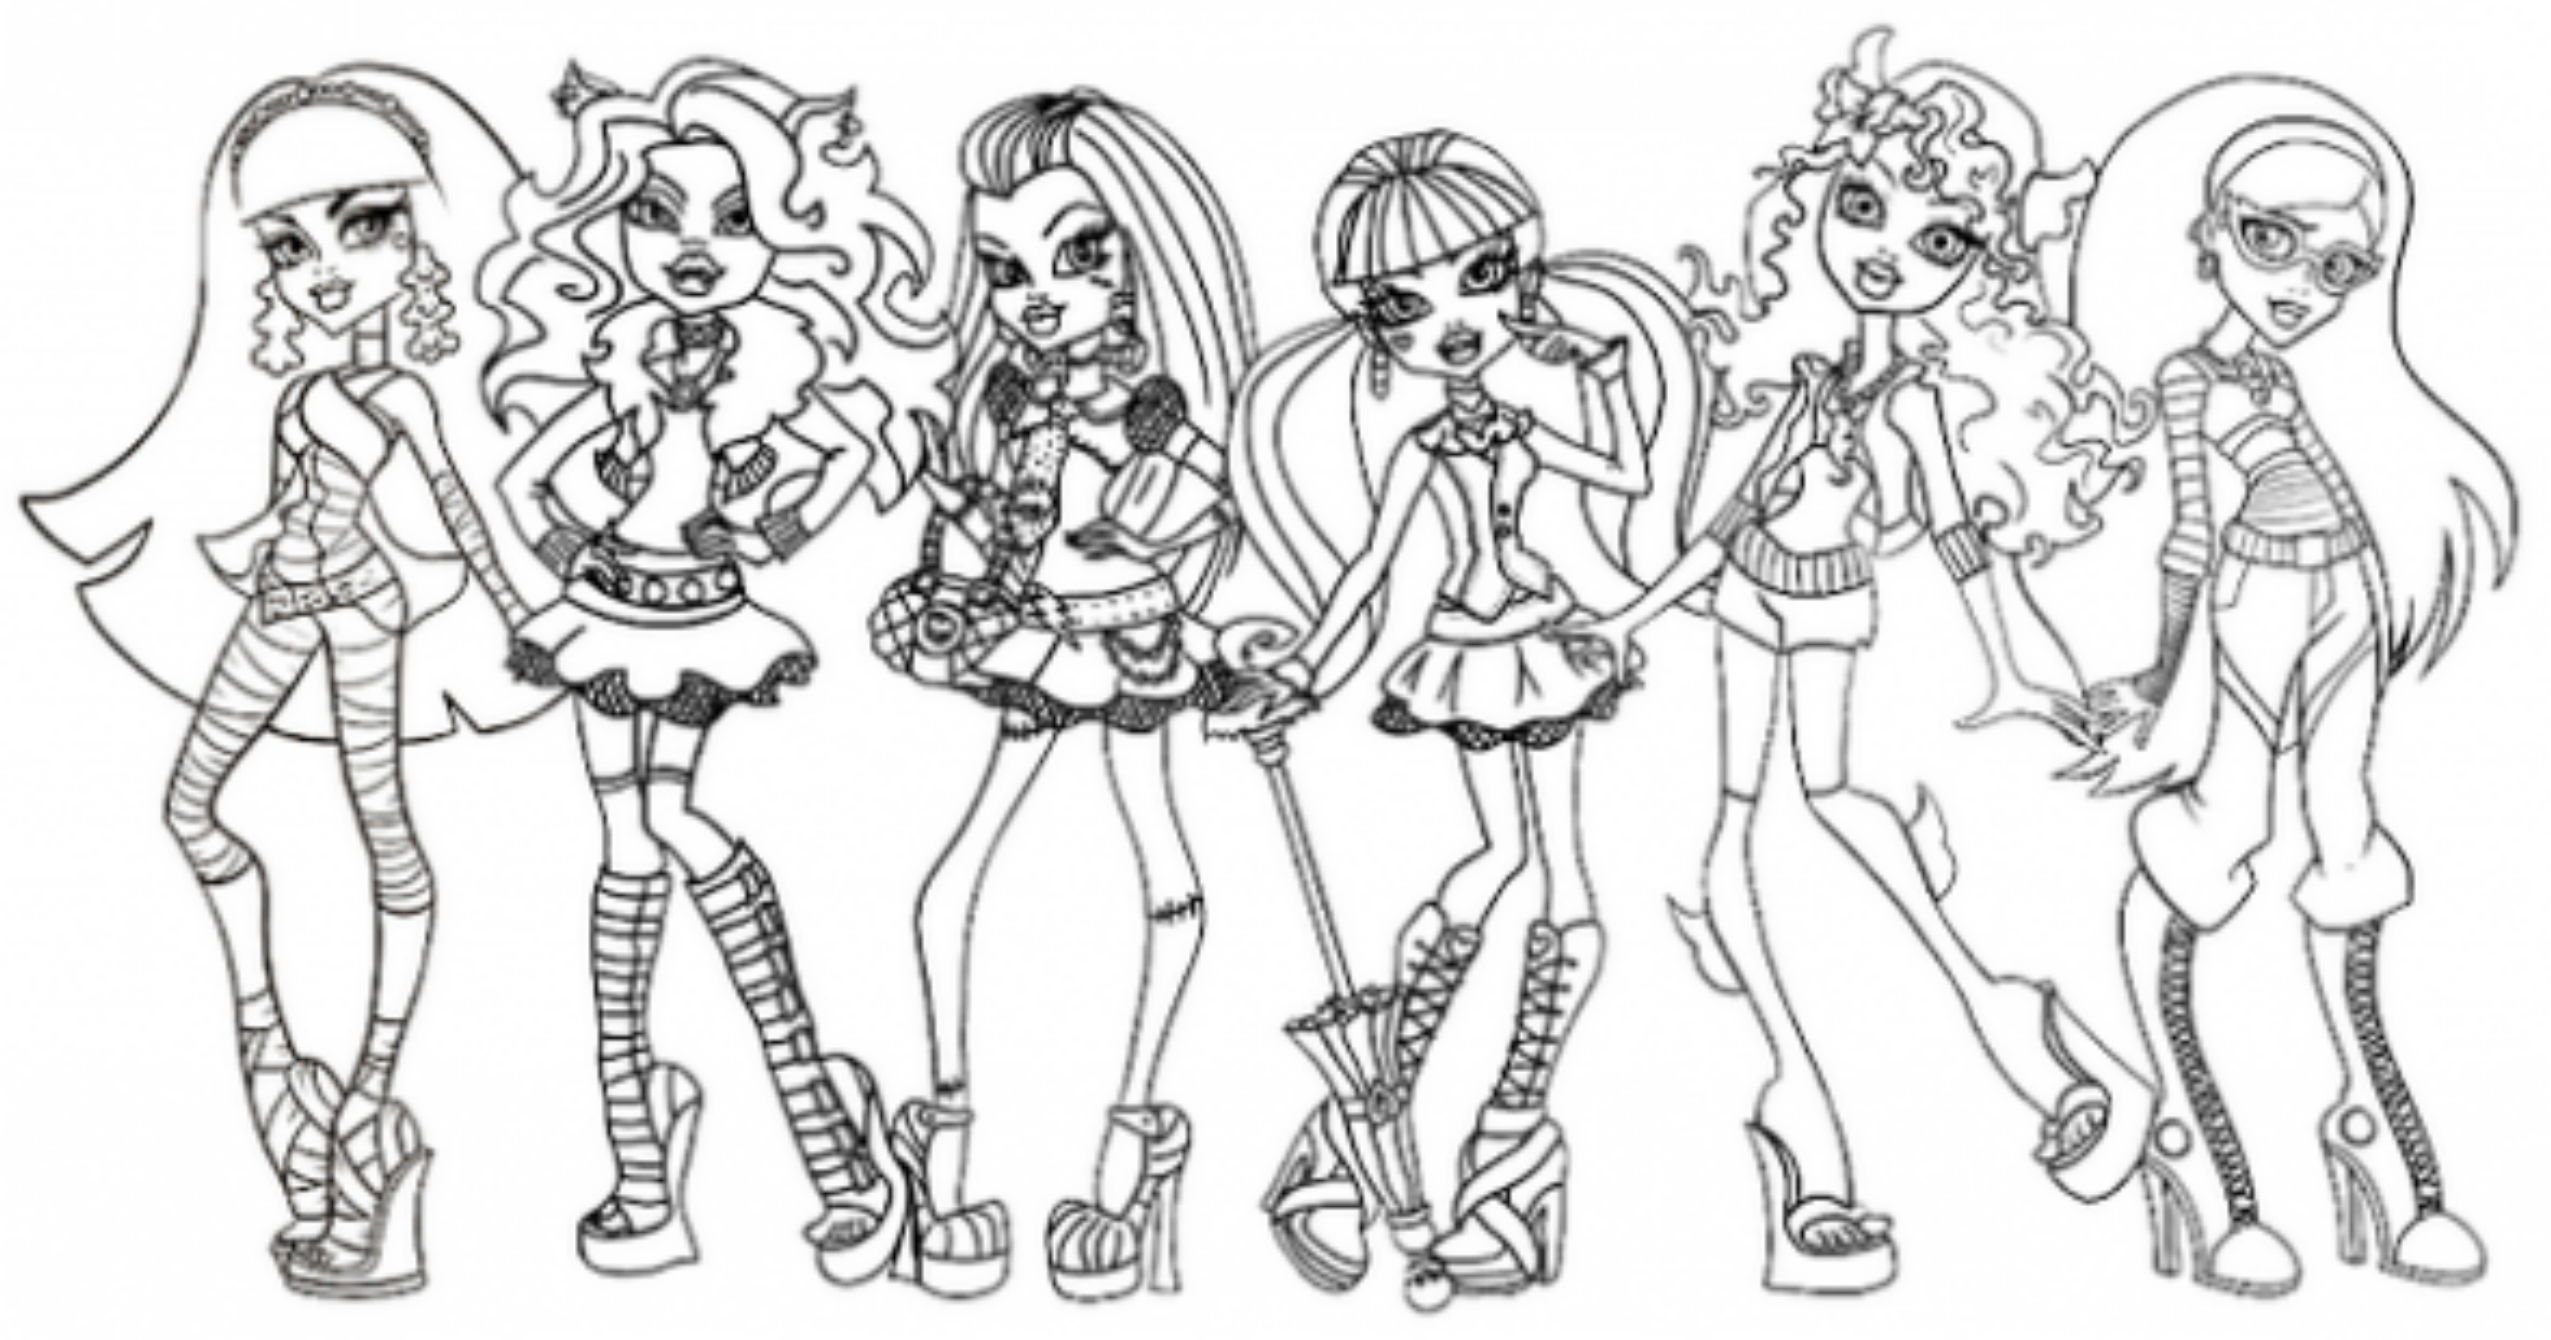 Free Monster High Coloring Pages For Kids In 2020 Monster High Pictures Monster High Characters Coloring Pages